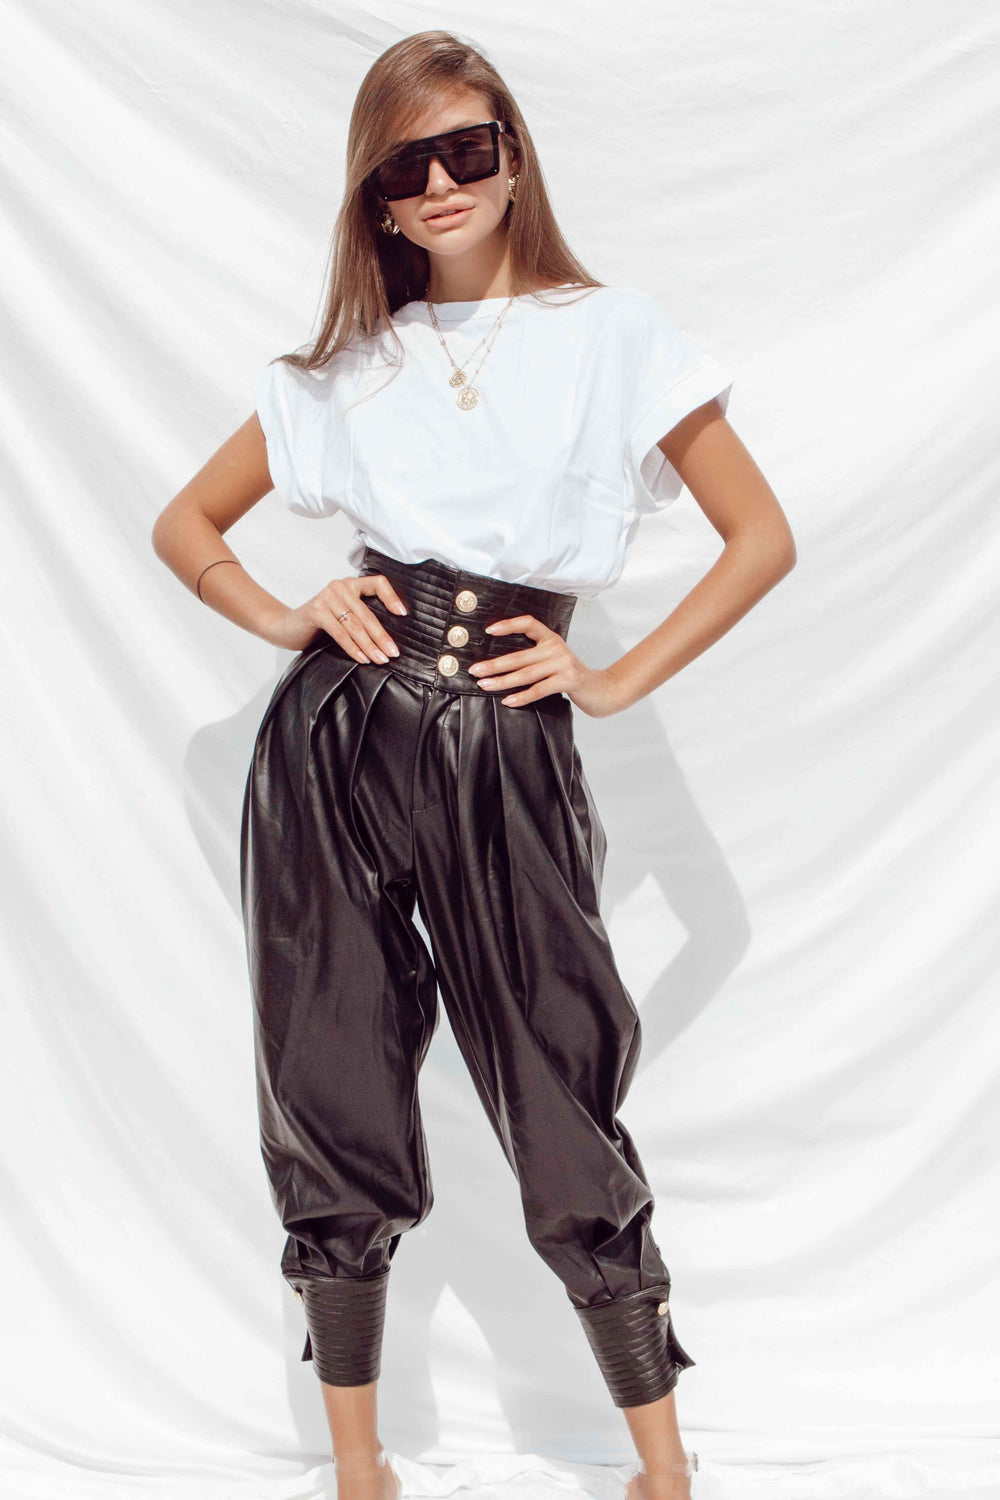 GWEN PANTS - Chic Le Frique